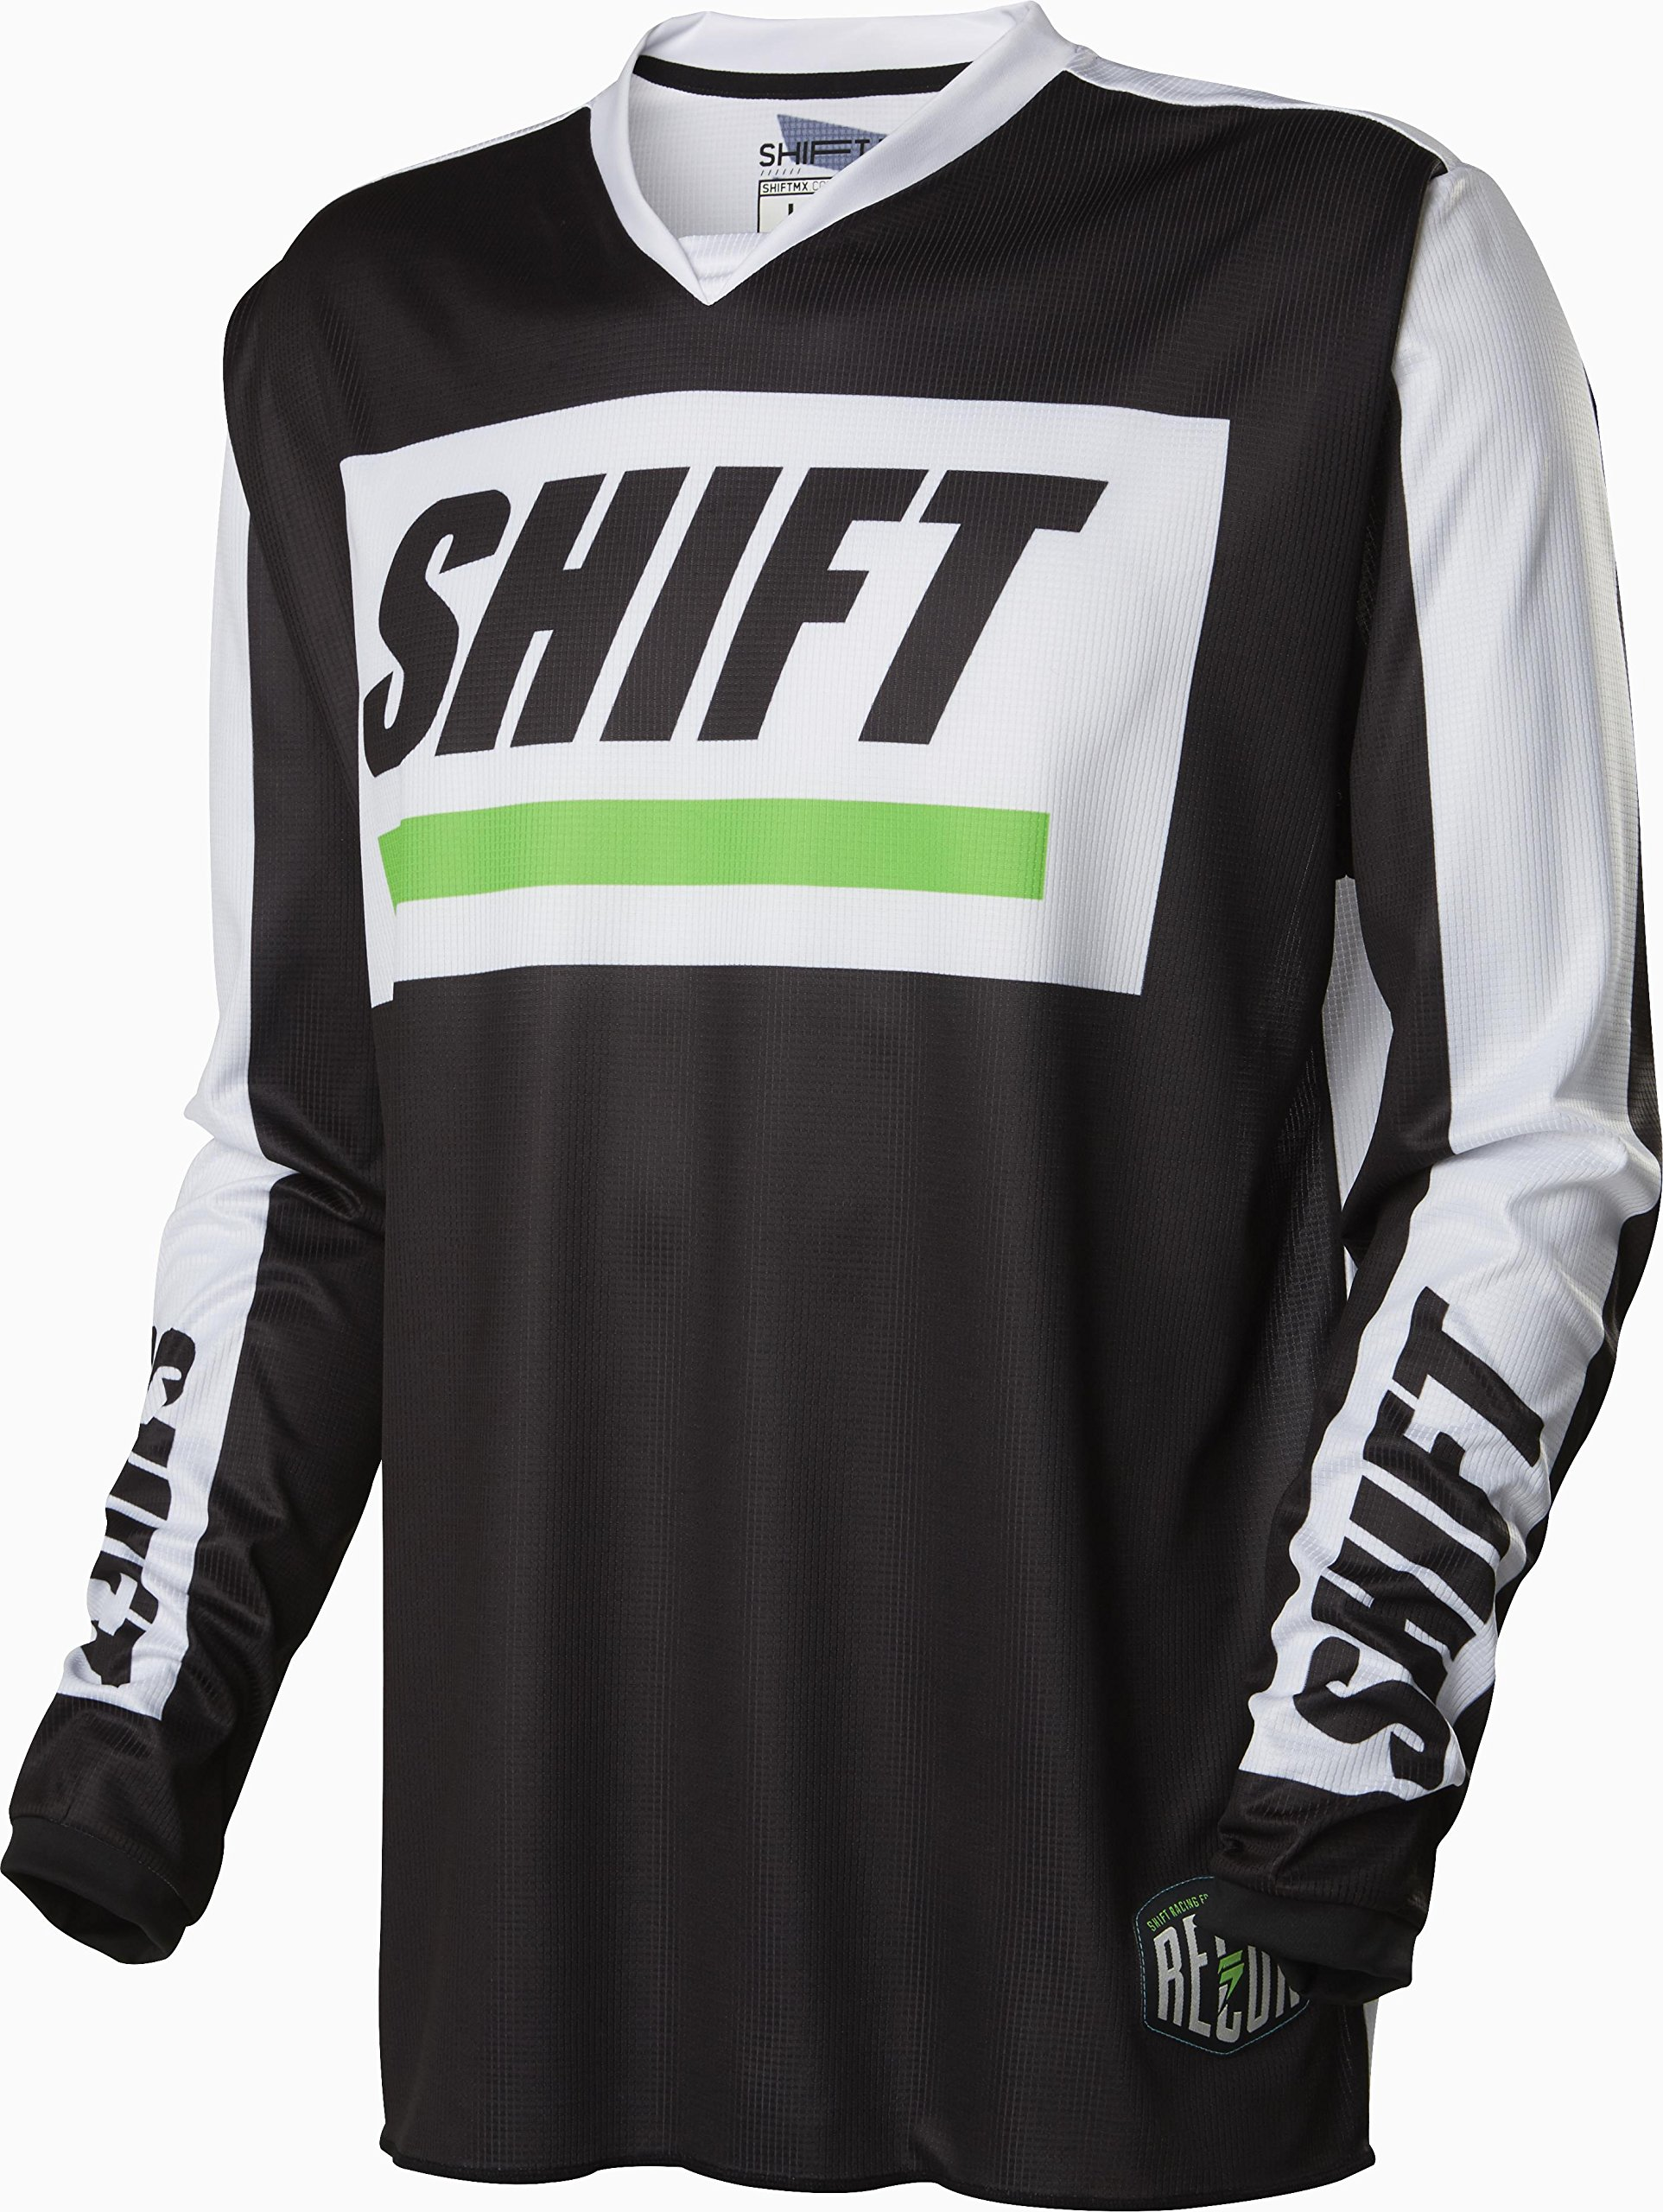 Shift Racing Recon Caliber Men's Off-Road Motorcycle Jerseys - Black/White/Large